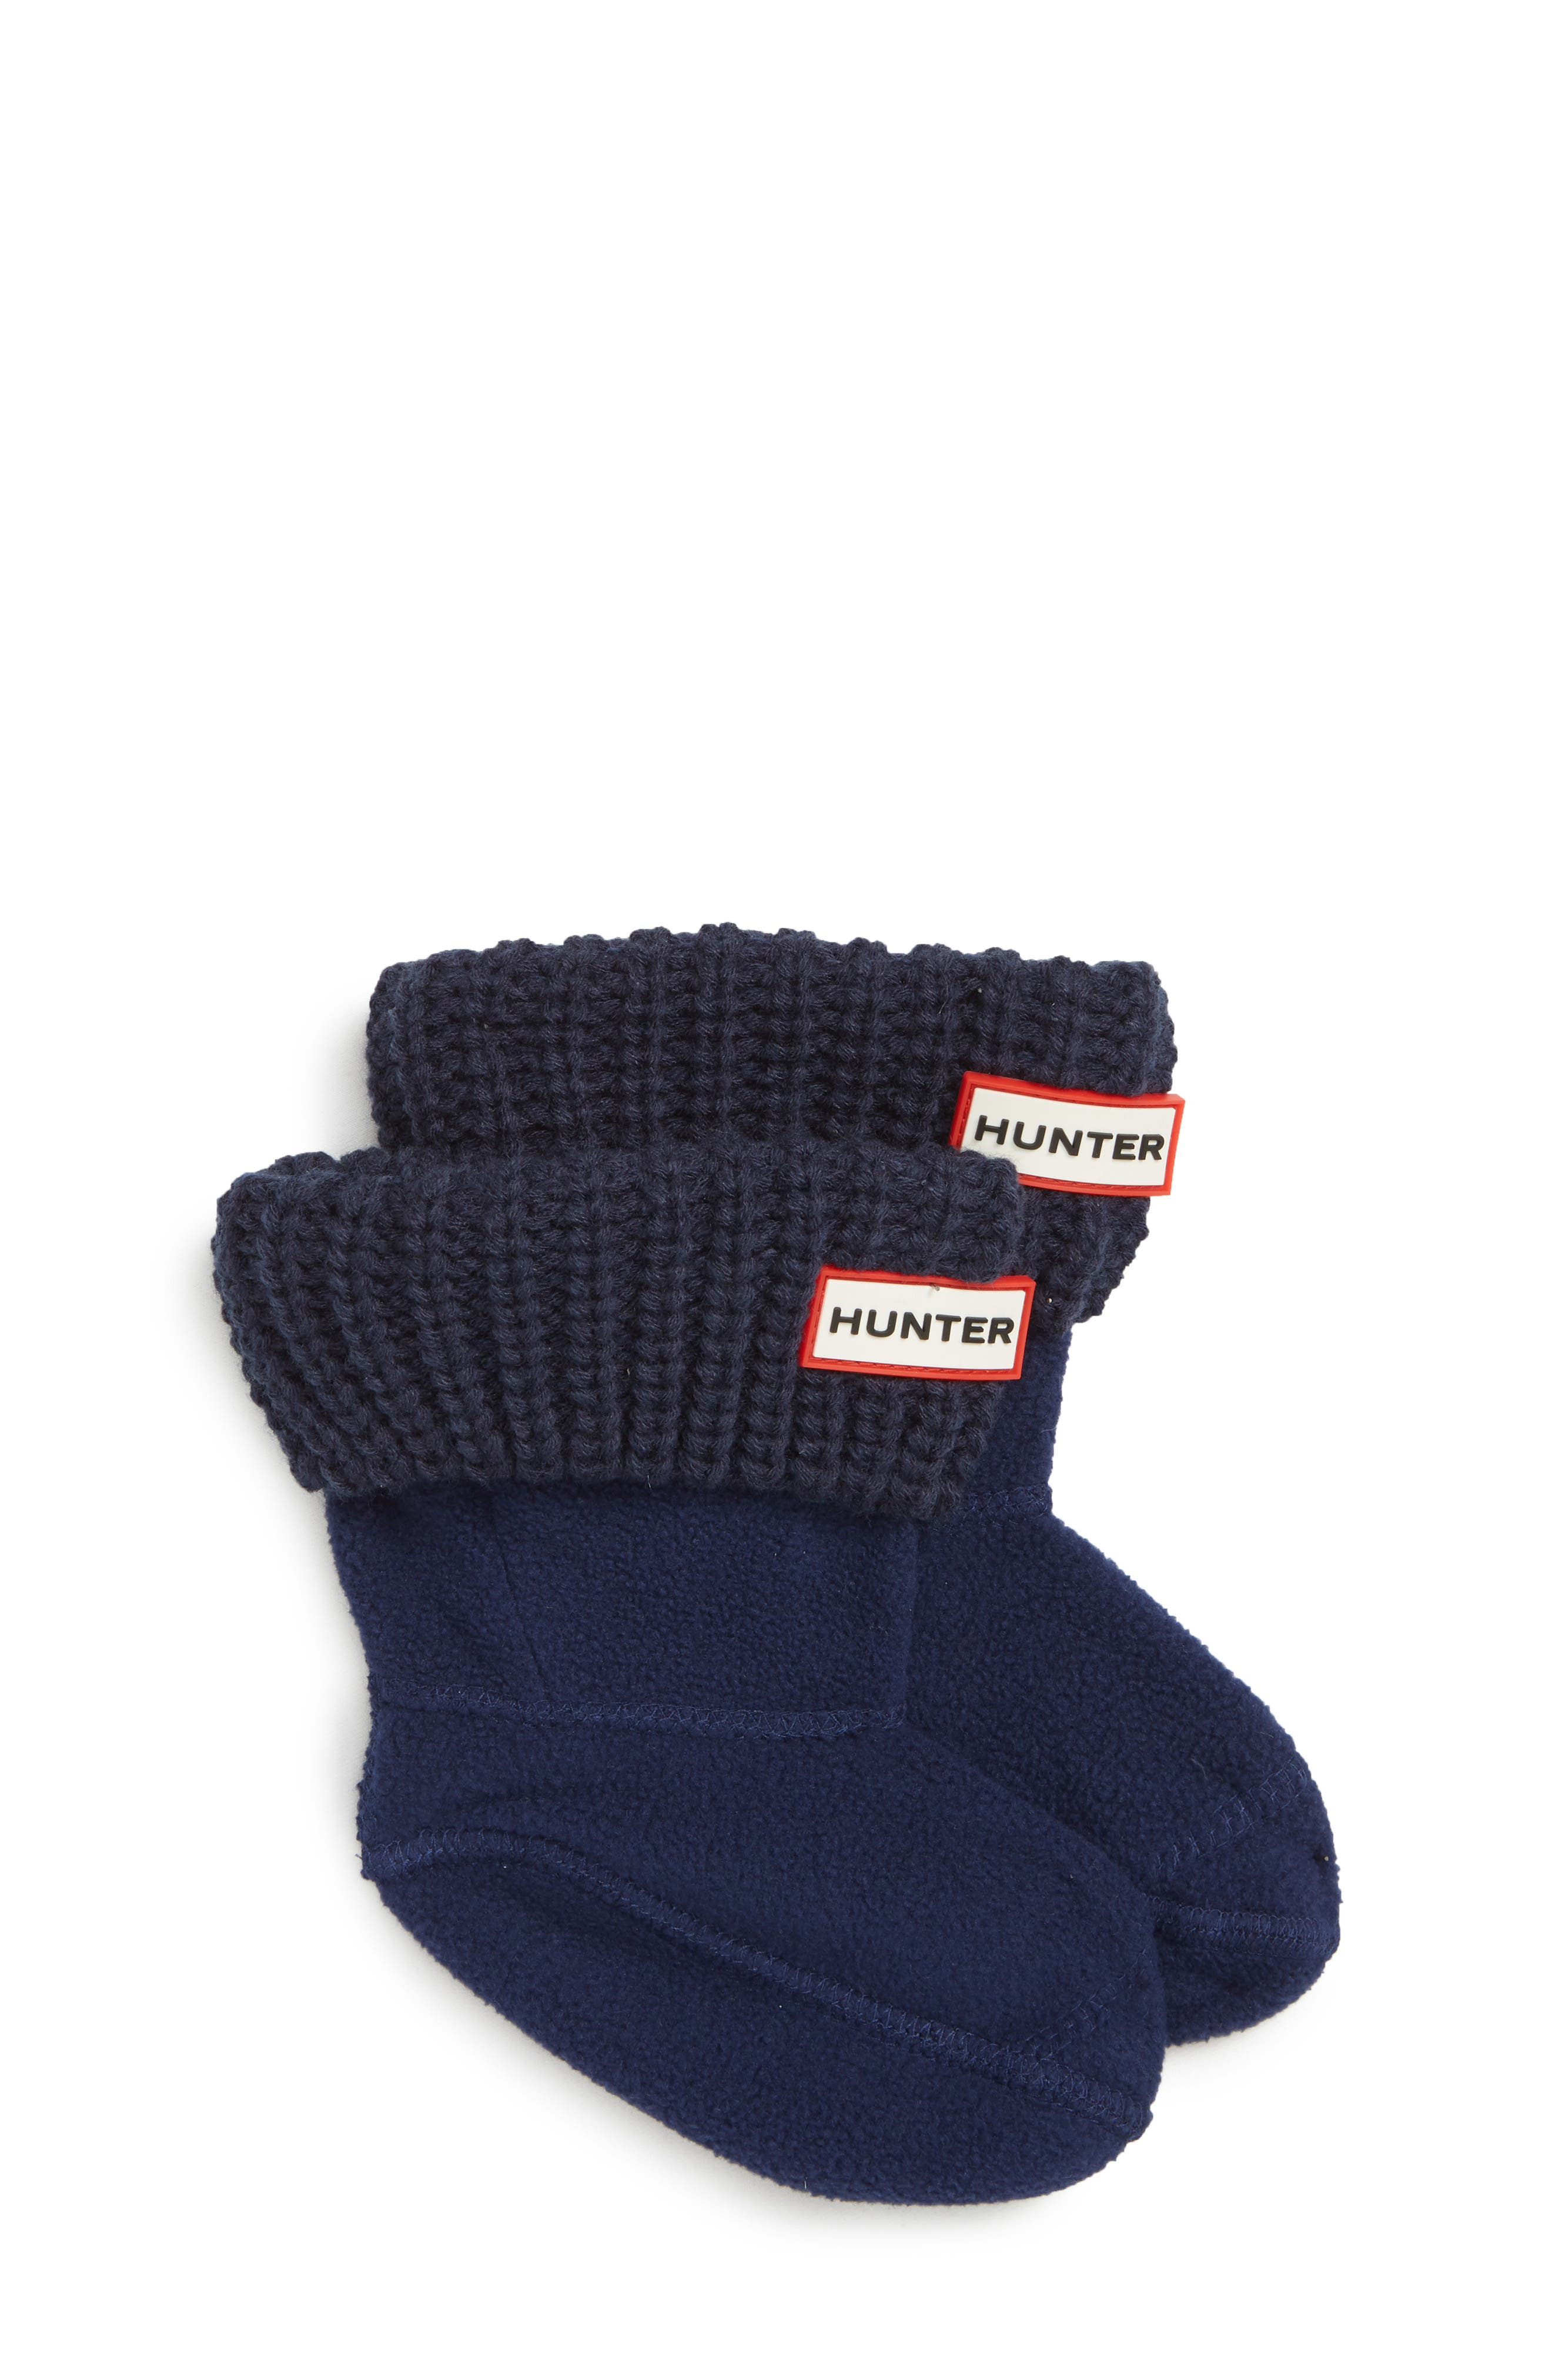 Toddler Girls Hunter Cardigan Knit Cuff Welly Boot Socks Size 810  Blue